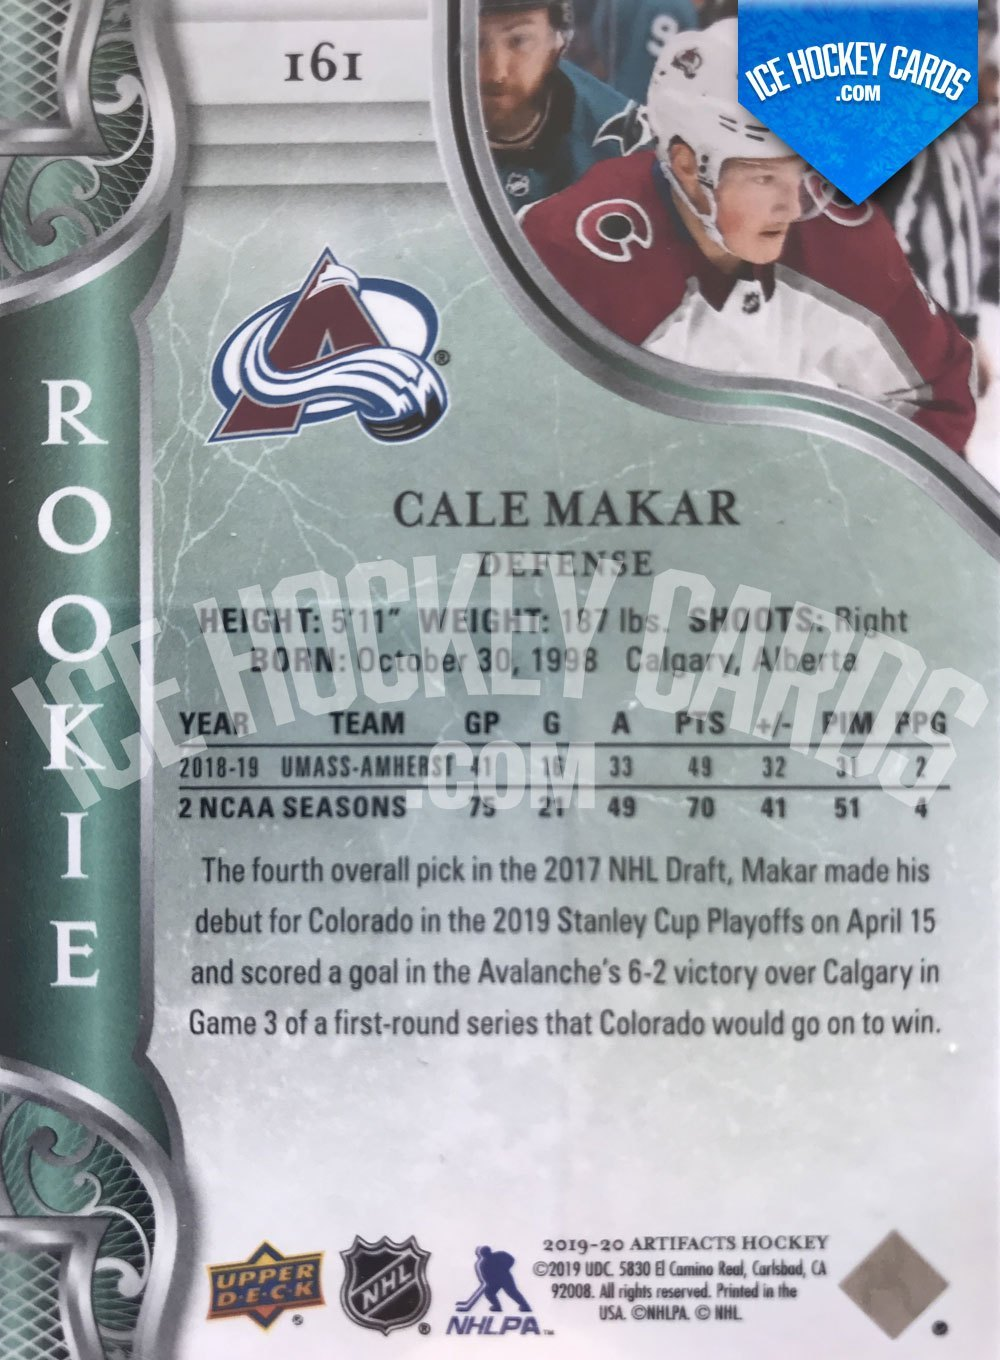 Upper Deck - Artifacts 19-20 - Cale Makar Base Rookie Card back